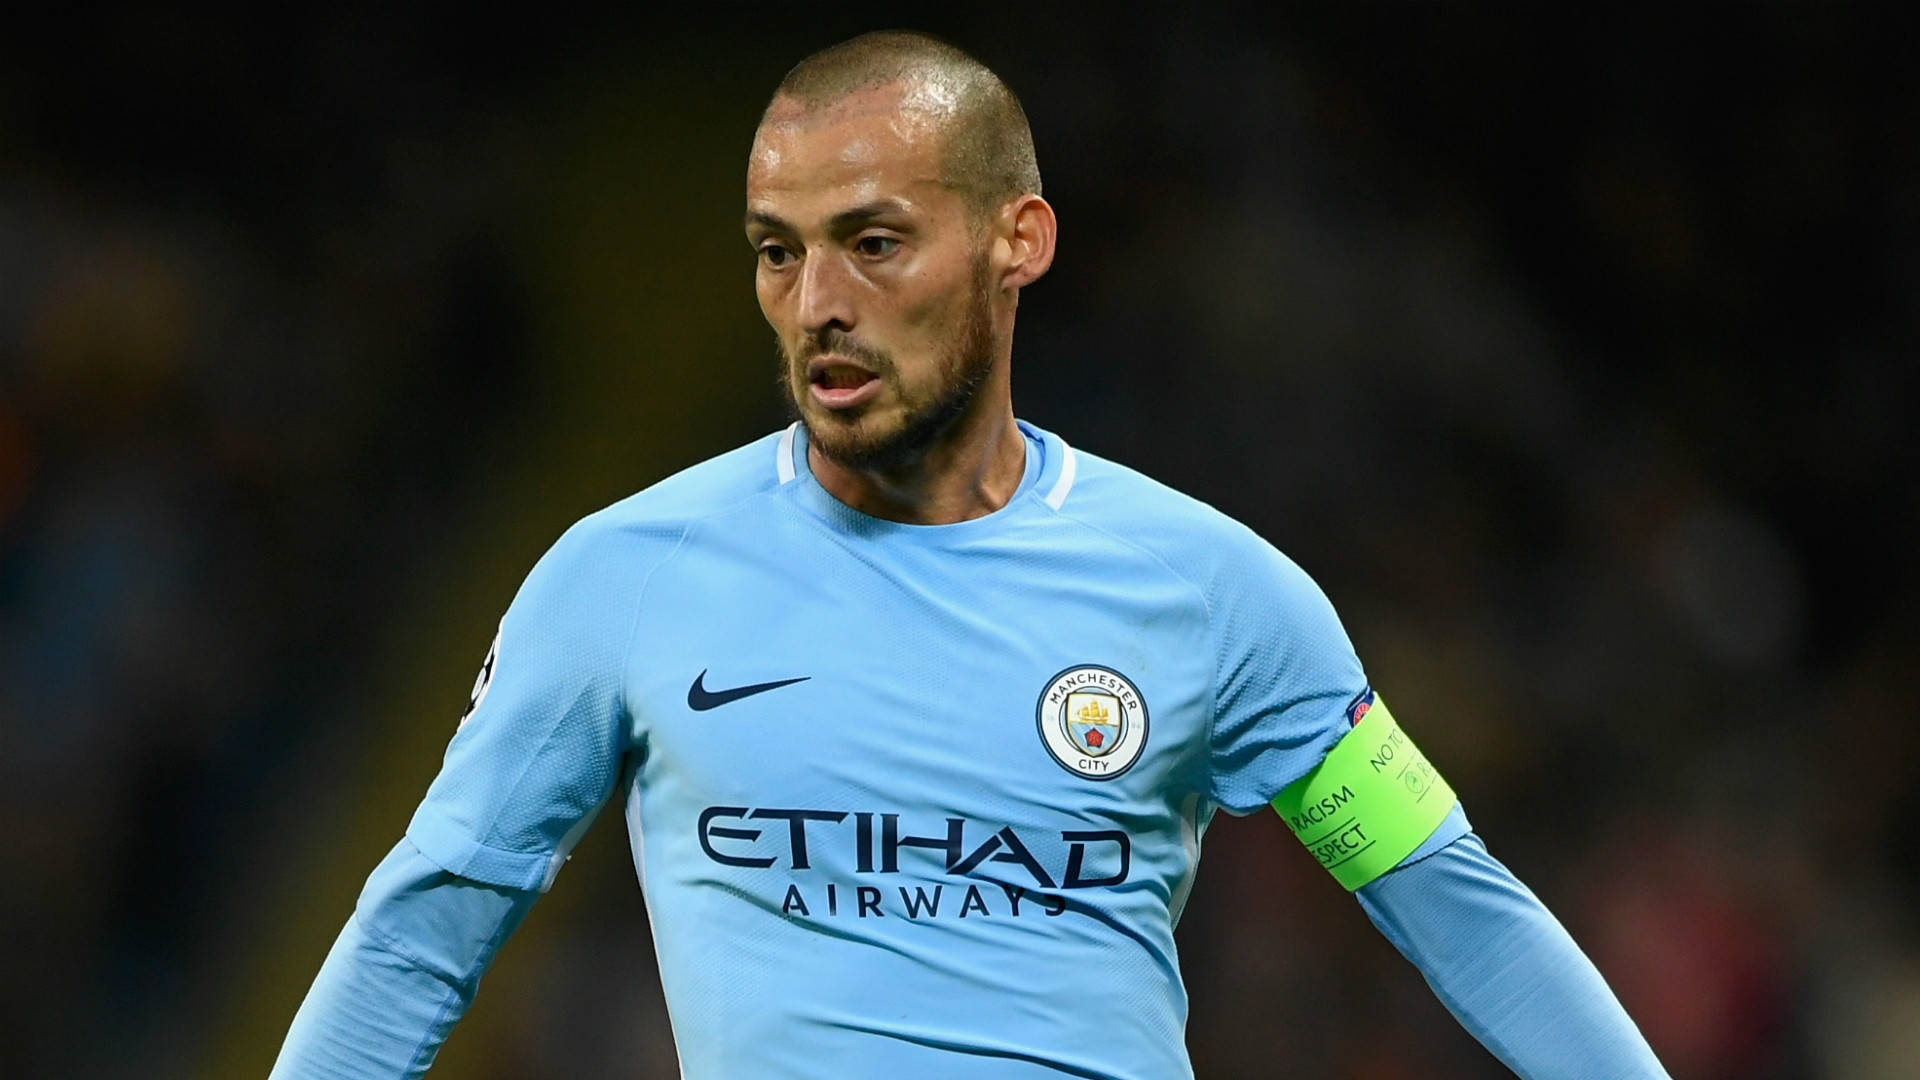 Manchester City's Creative Hub David Silva Is In The Form